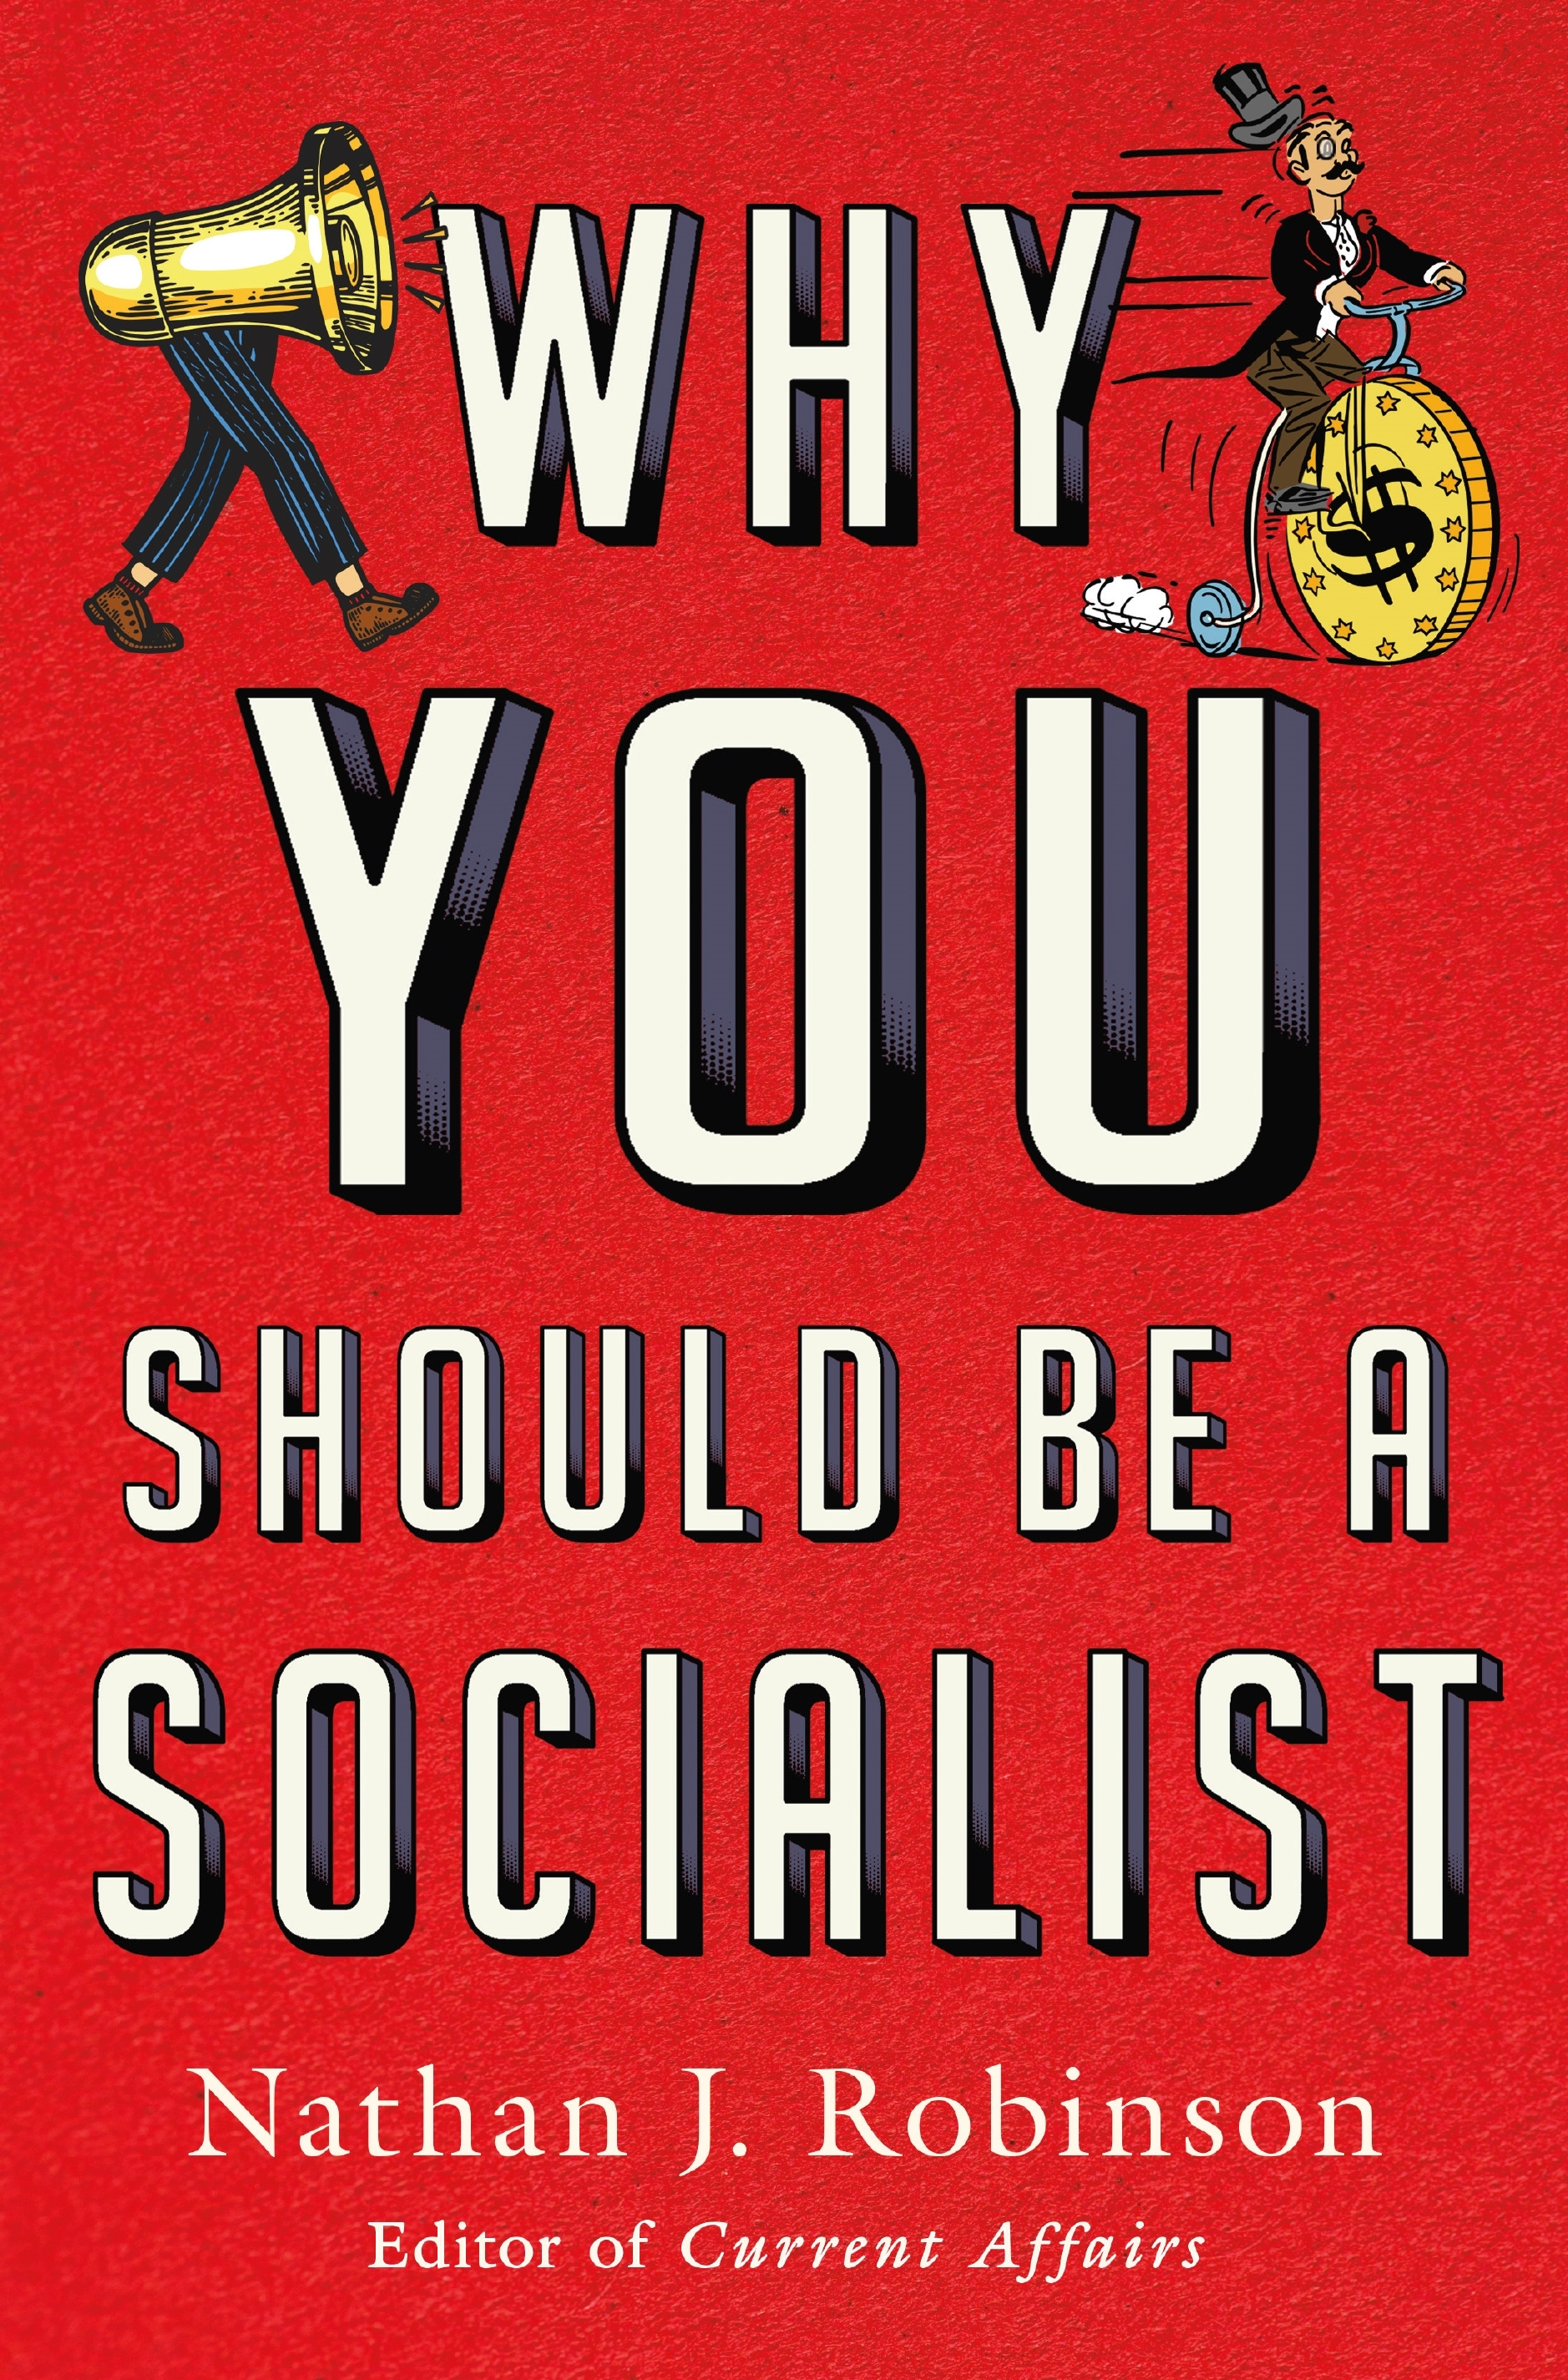 Book Launch: Why You Should Be A Socialist by Nathan J. Robinson in conversation with Timothy Faust